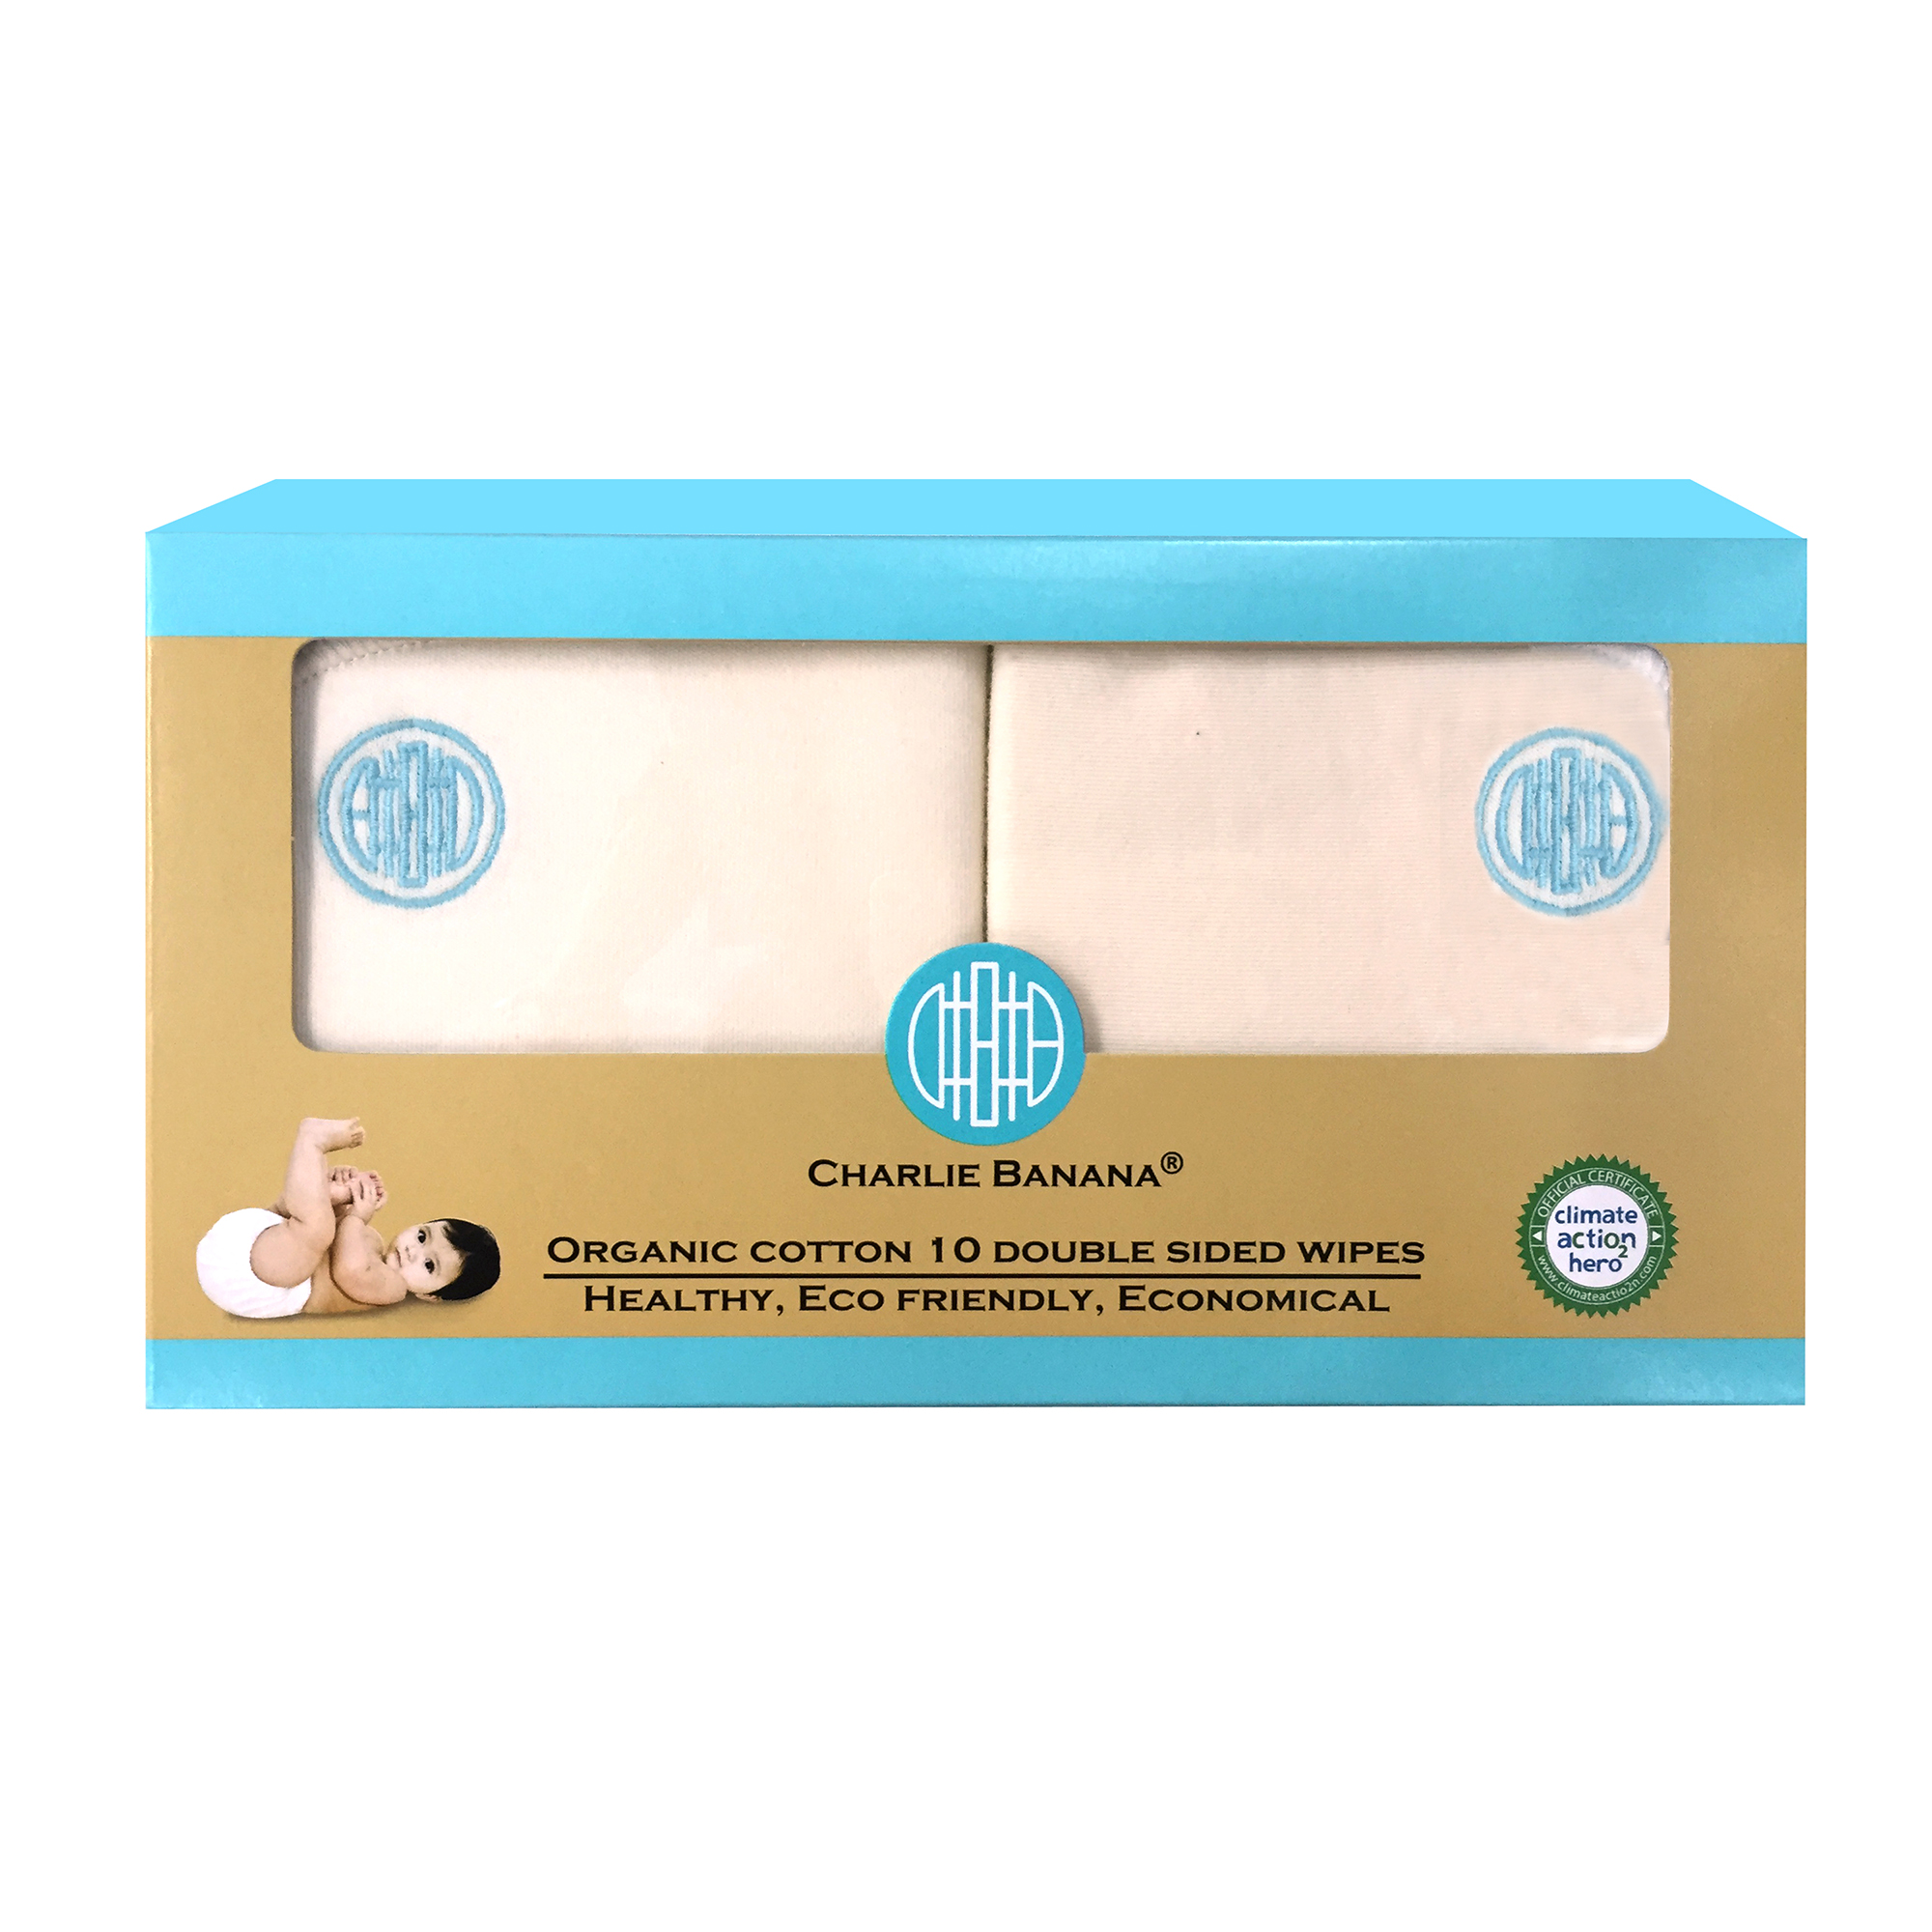 Charlie Banana Organic Cotton Blue Emb Double Sided Wipes, 10 count